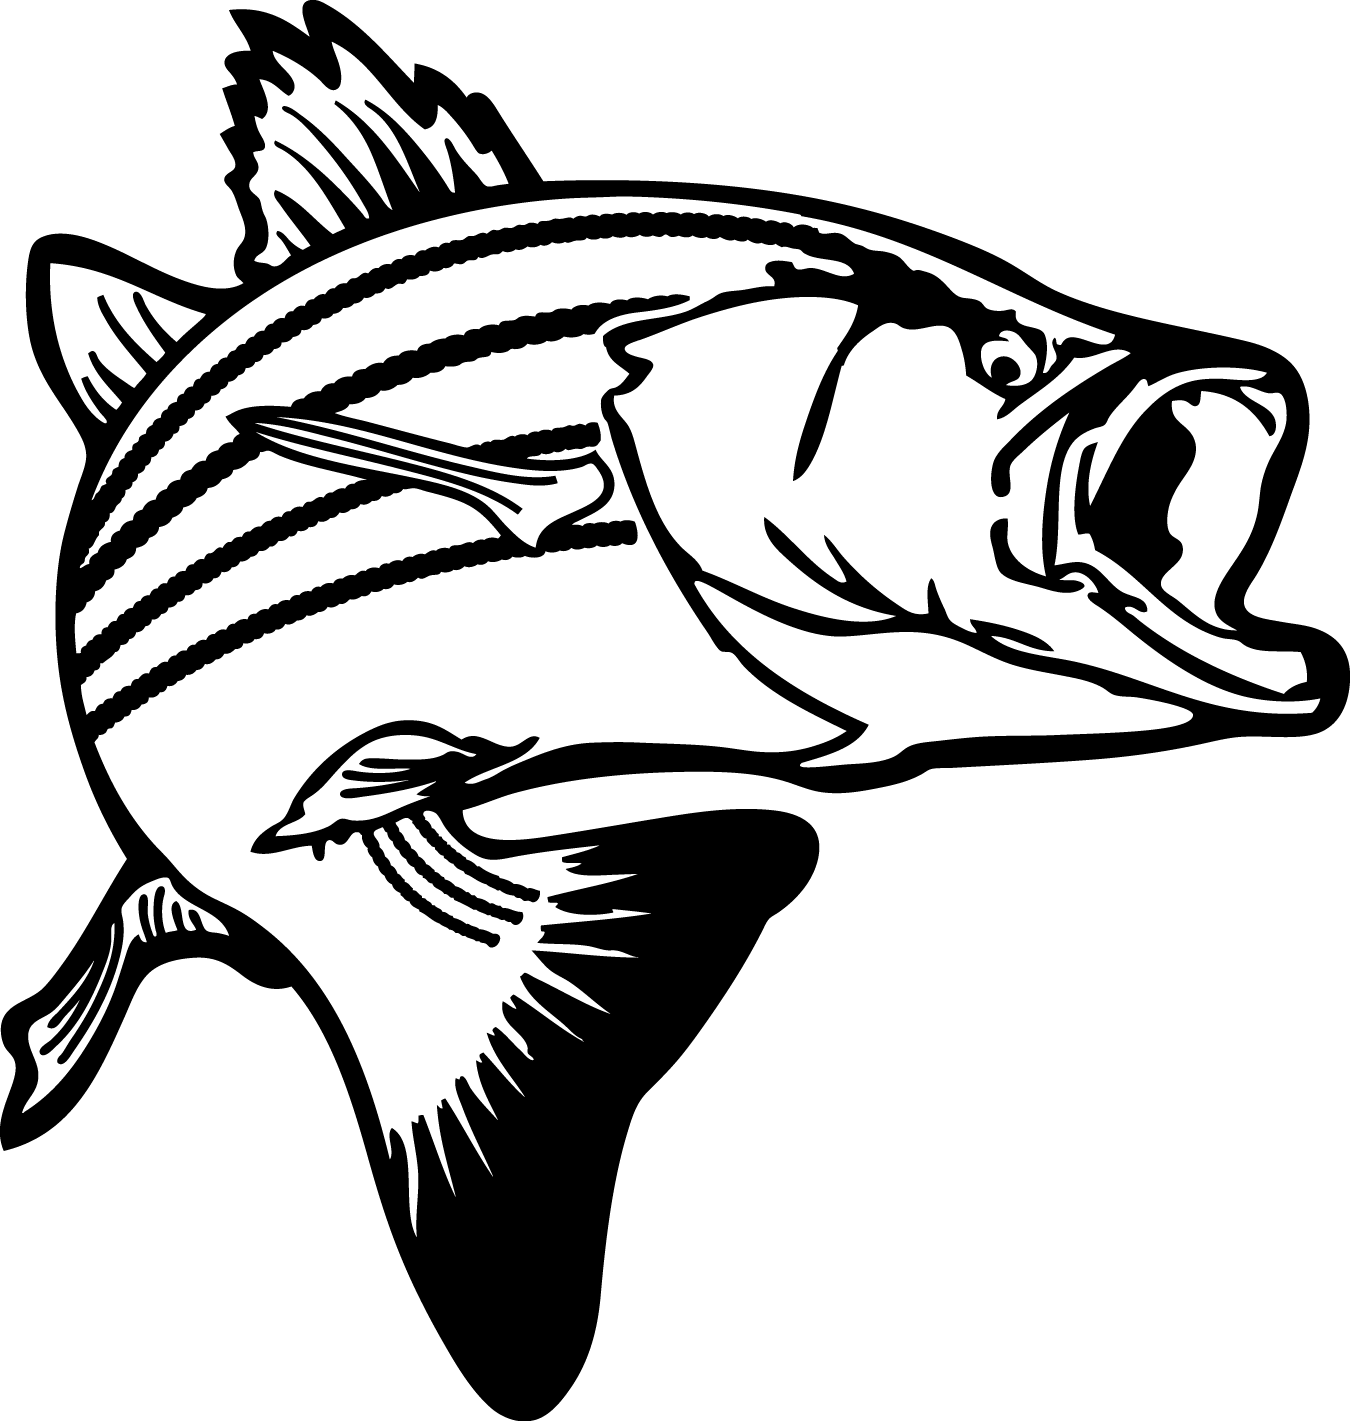 Jumping bass clip art. Fish clipart in black and white